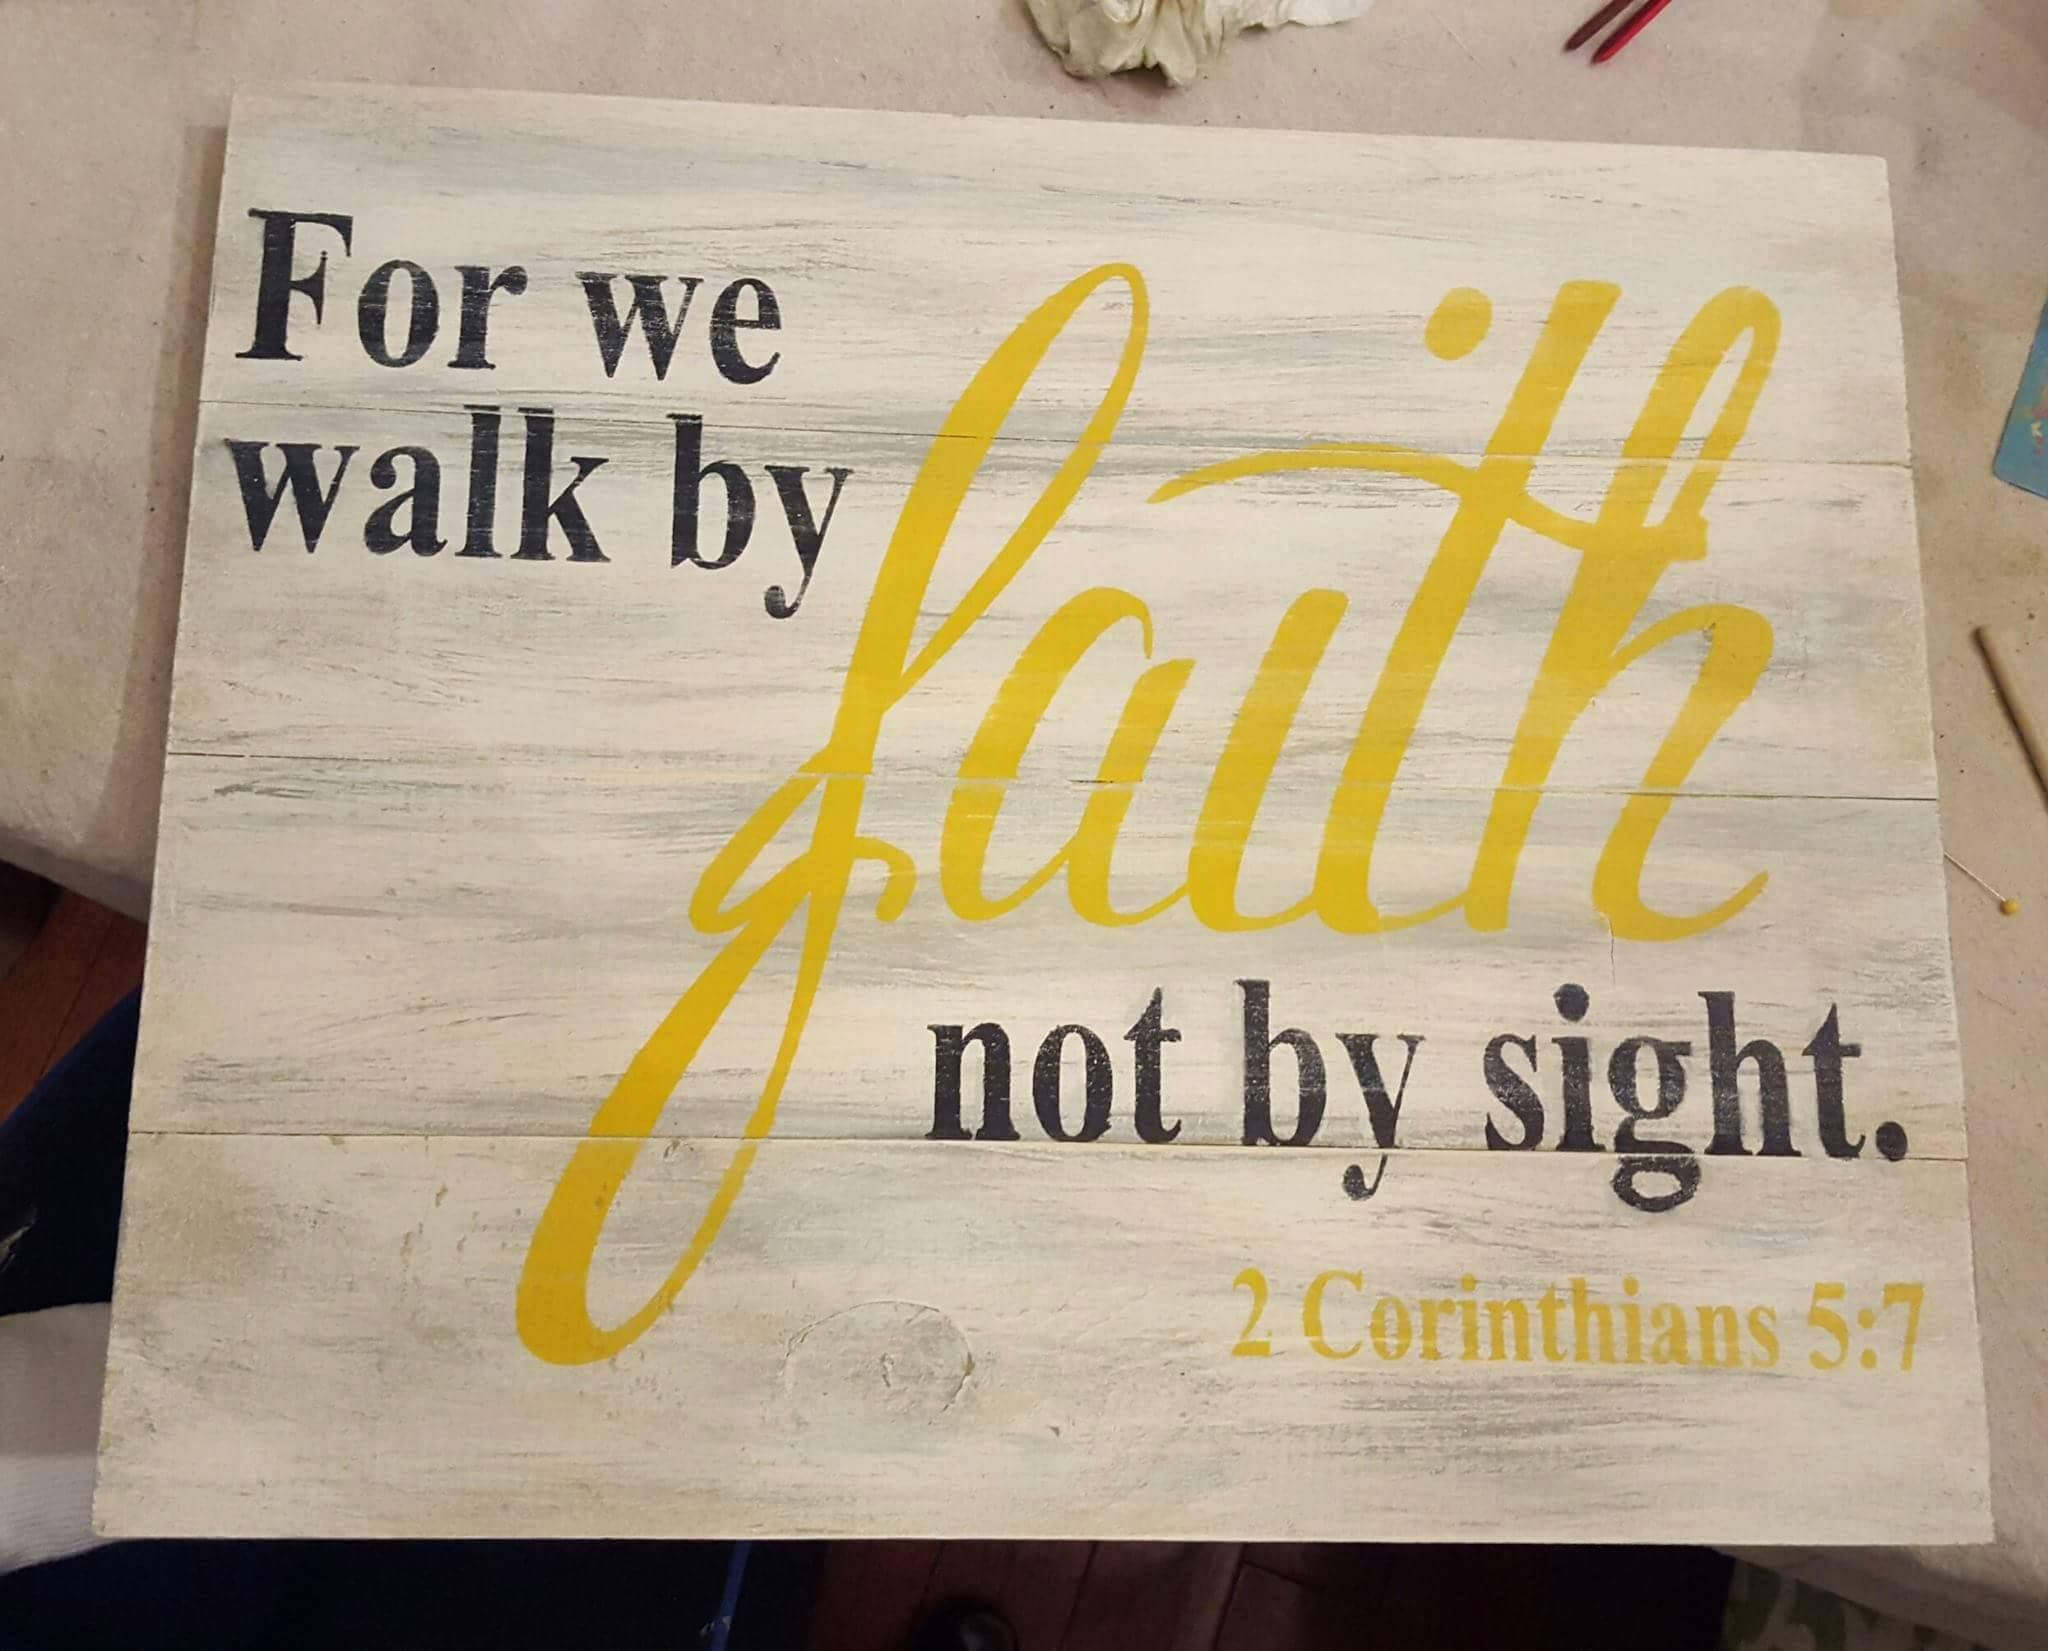 For we walk by faith not by sight